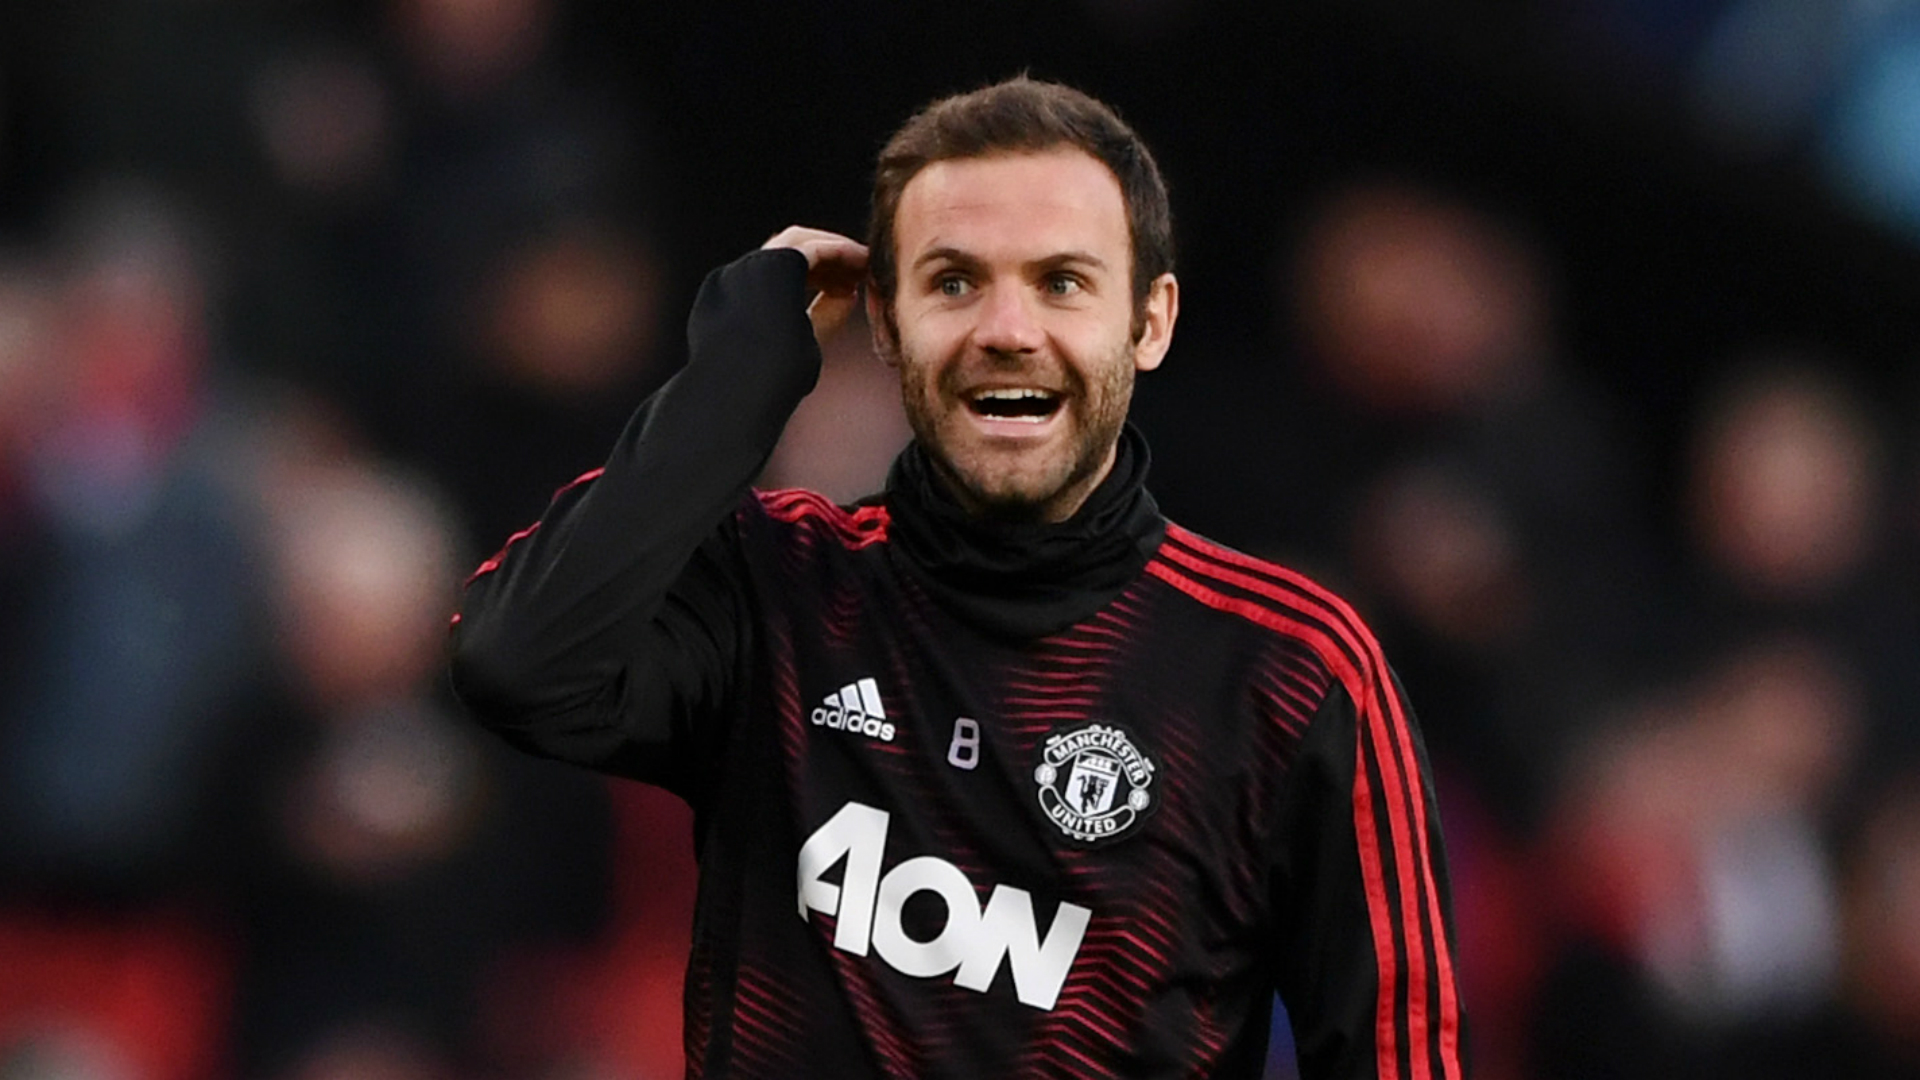 Man United reveal released list, offer Mata new deal